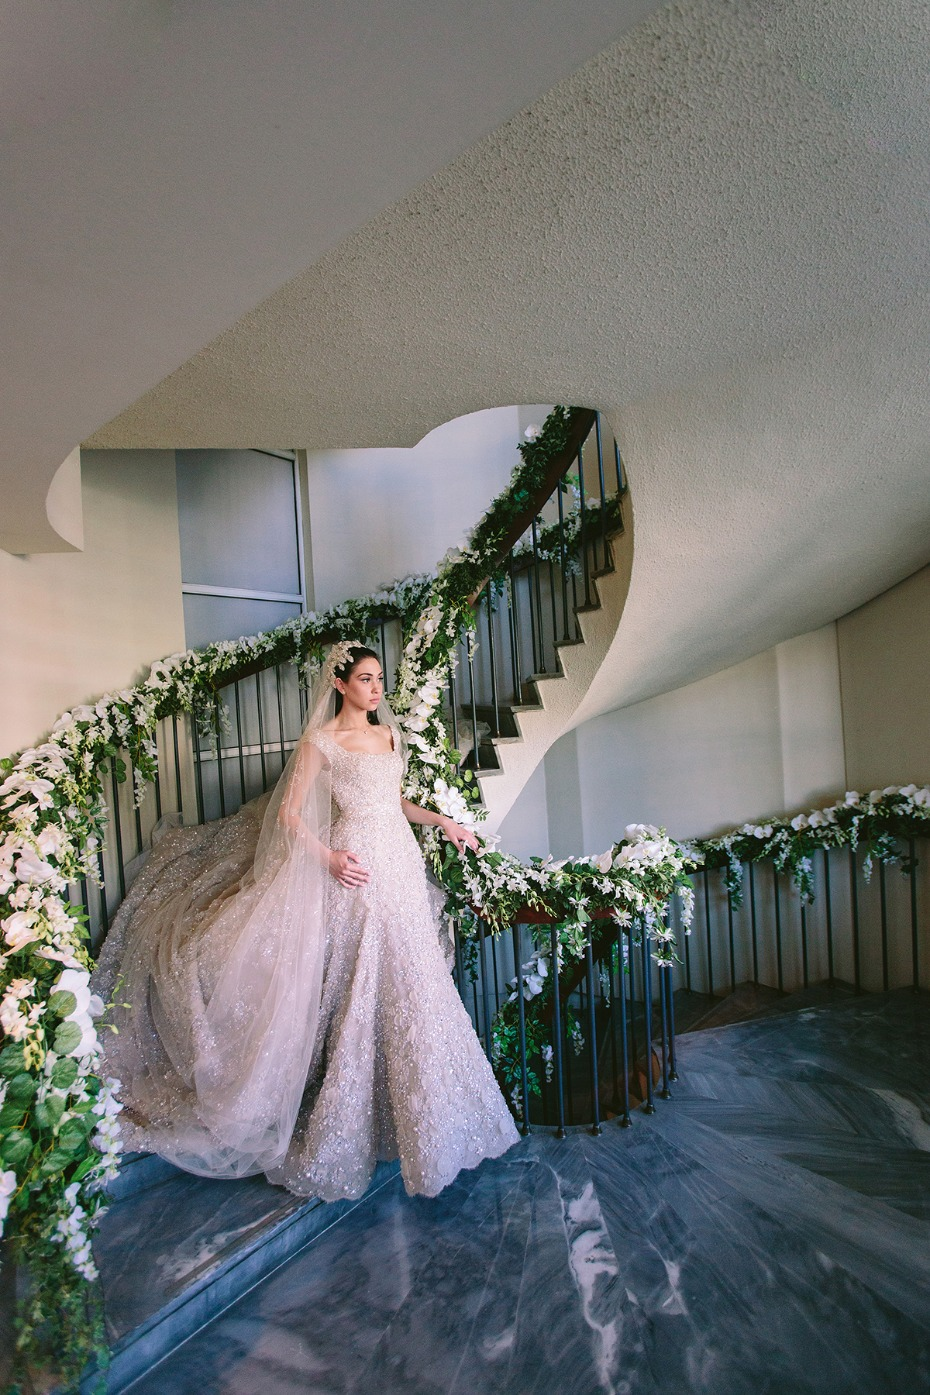 a bride descending a flower draped staircase